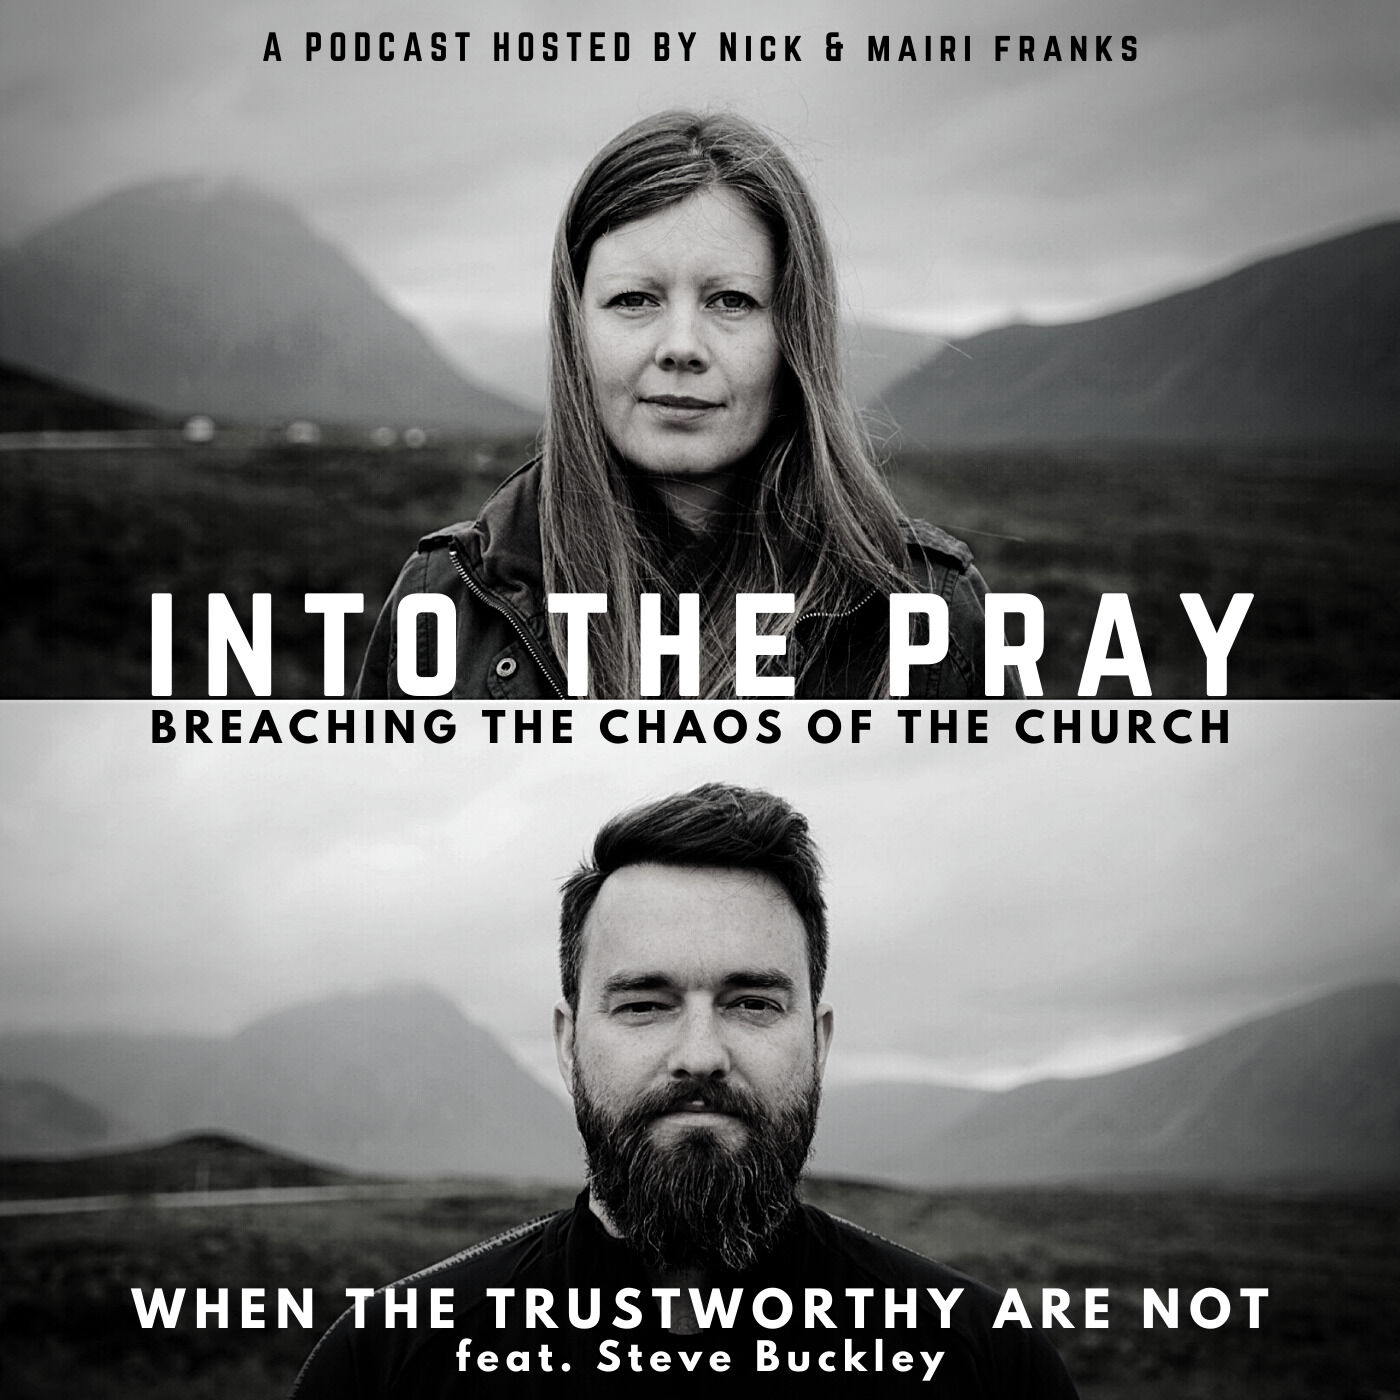 When the Trustworthy Are Not (feat. Steve Buckley)